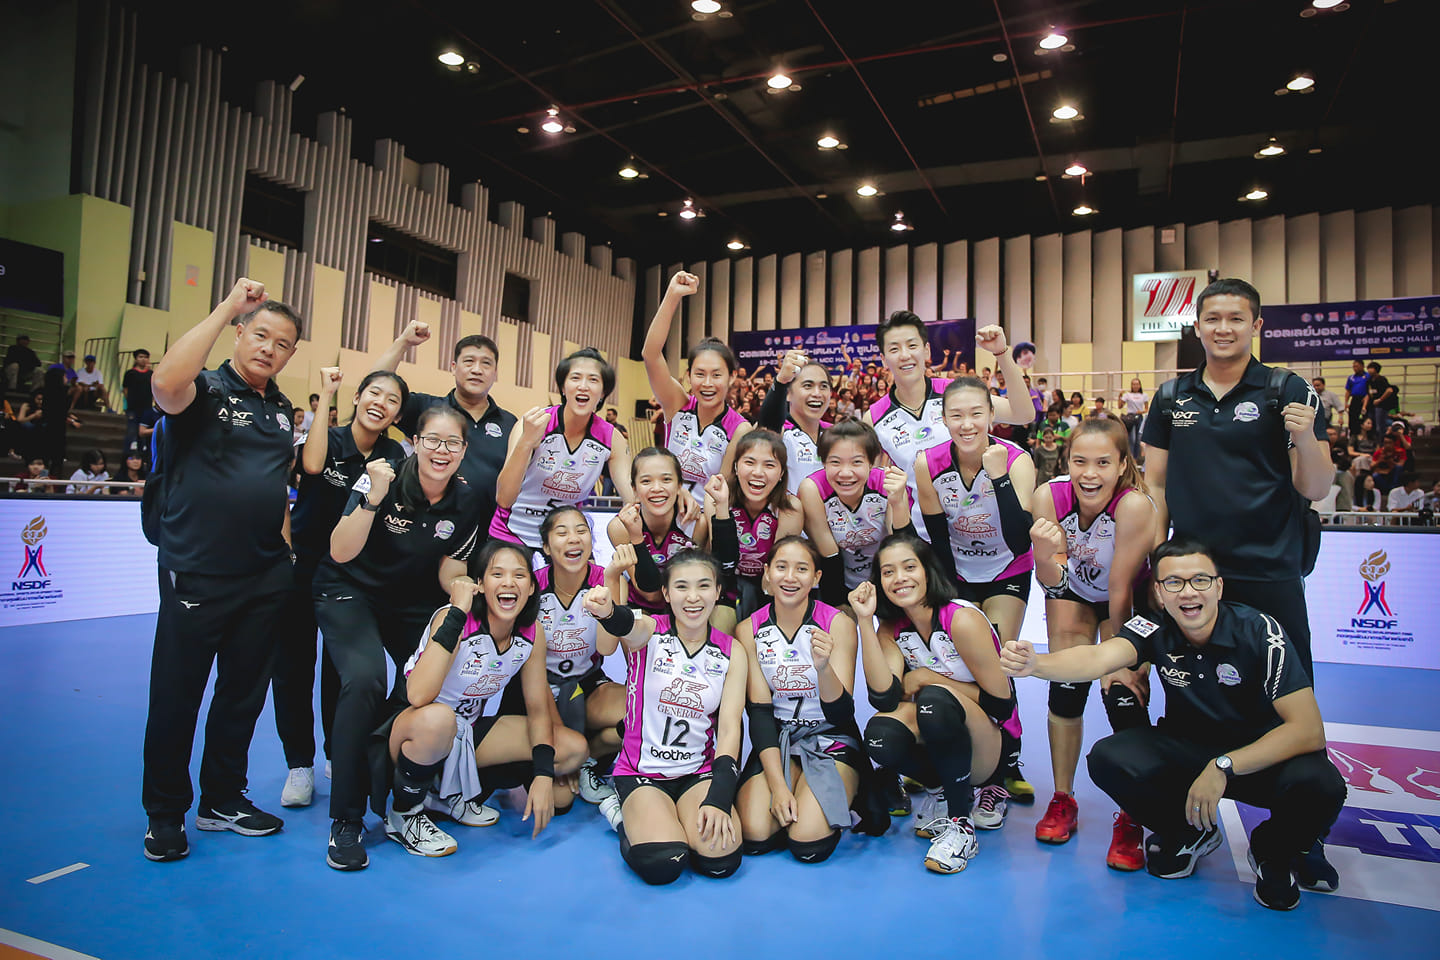 SUPREME COMPLETE HAT-TRICK OF WINS AT SUPER LEAGUE AHEAD OF ASIAN WOMEN'S CLUB CHAMPIONSHIP